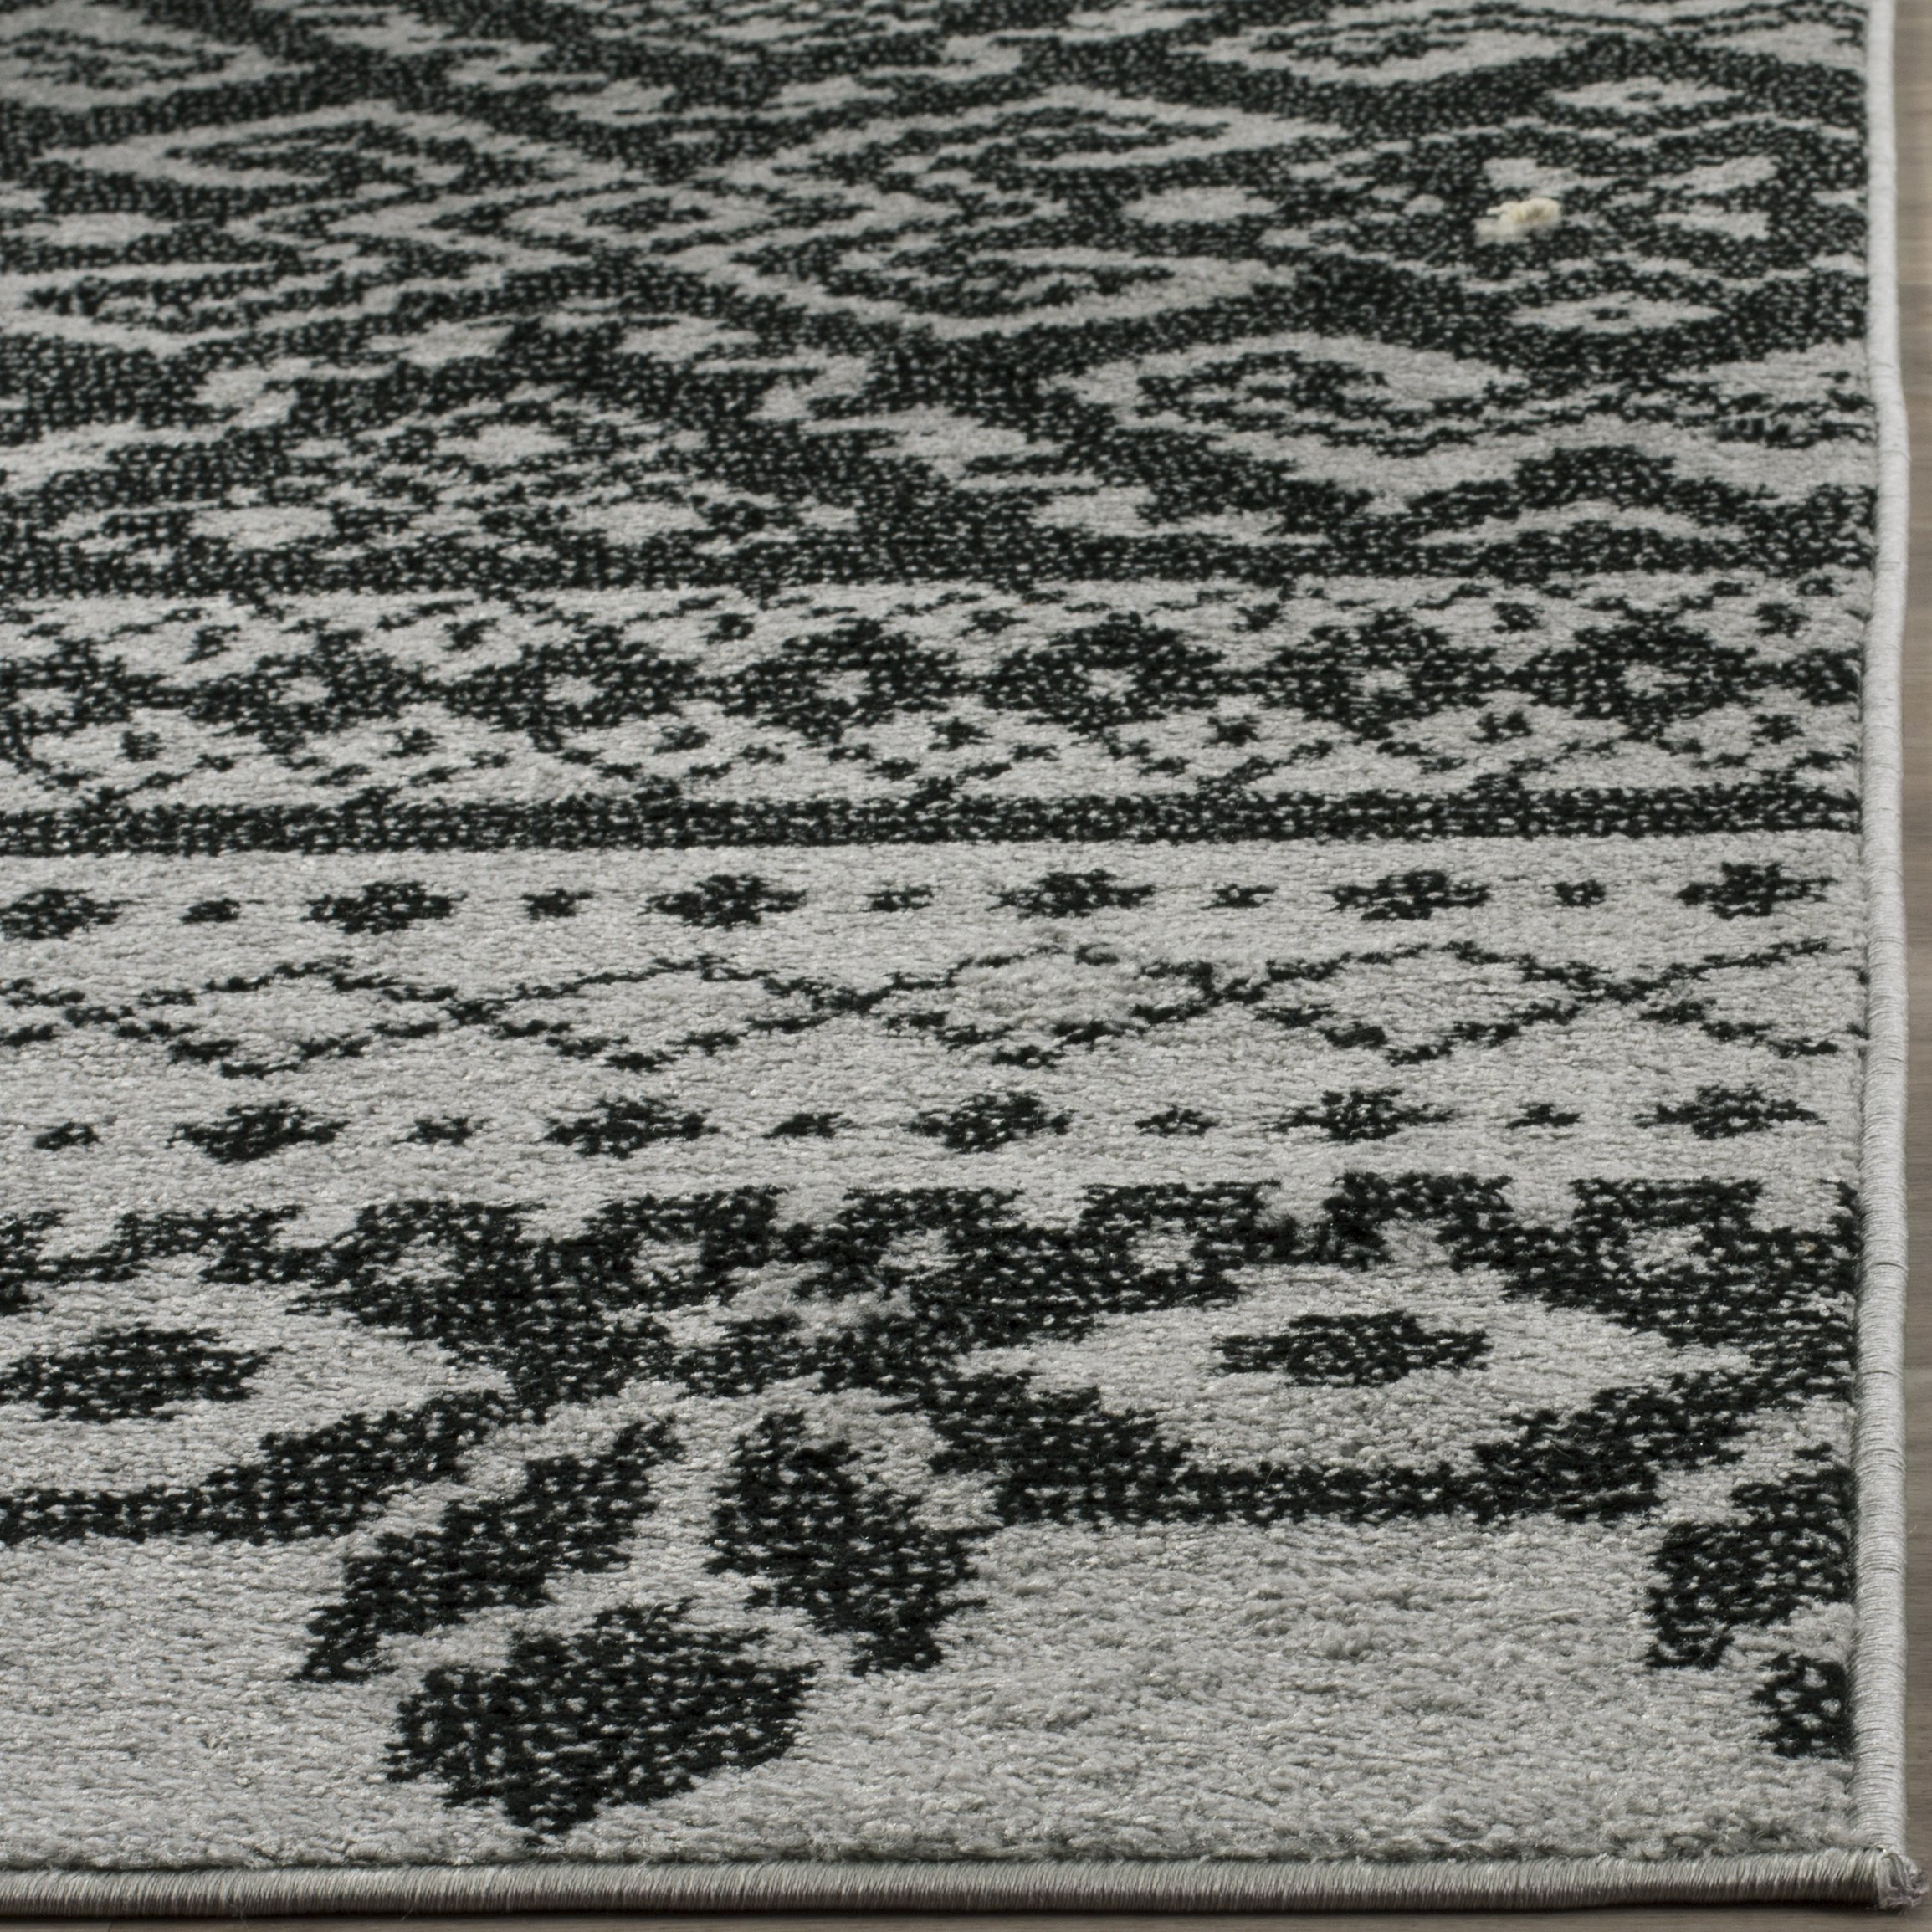 Safavieh Adirondack Collection ADR107A Silver and Black Rustic Bohemian Area Rug (9' x 12') by Safavieh (Image #2)